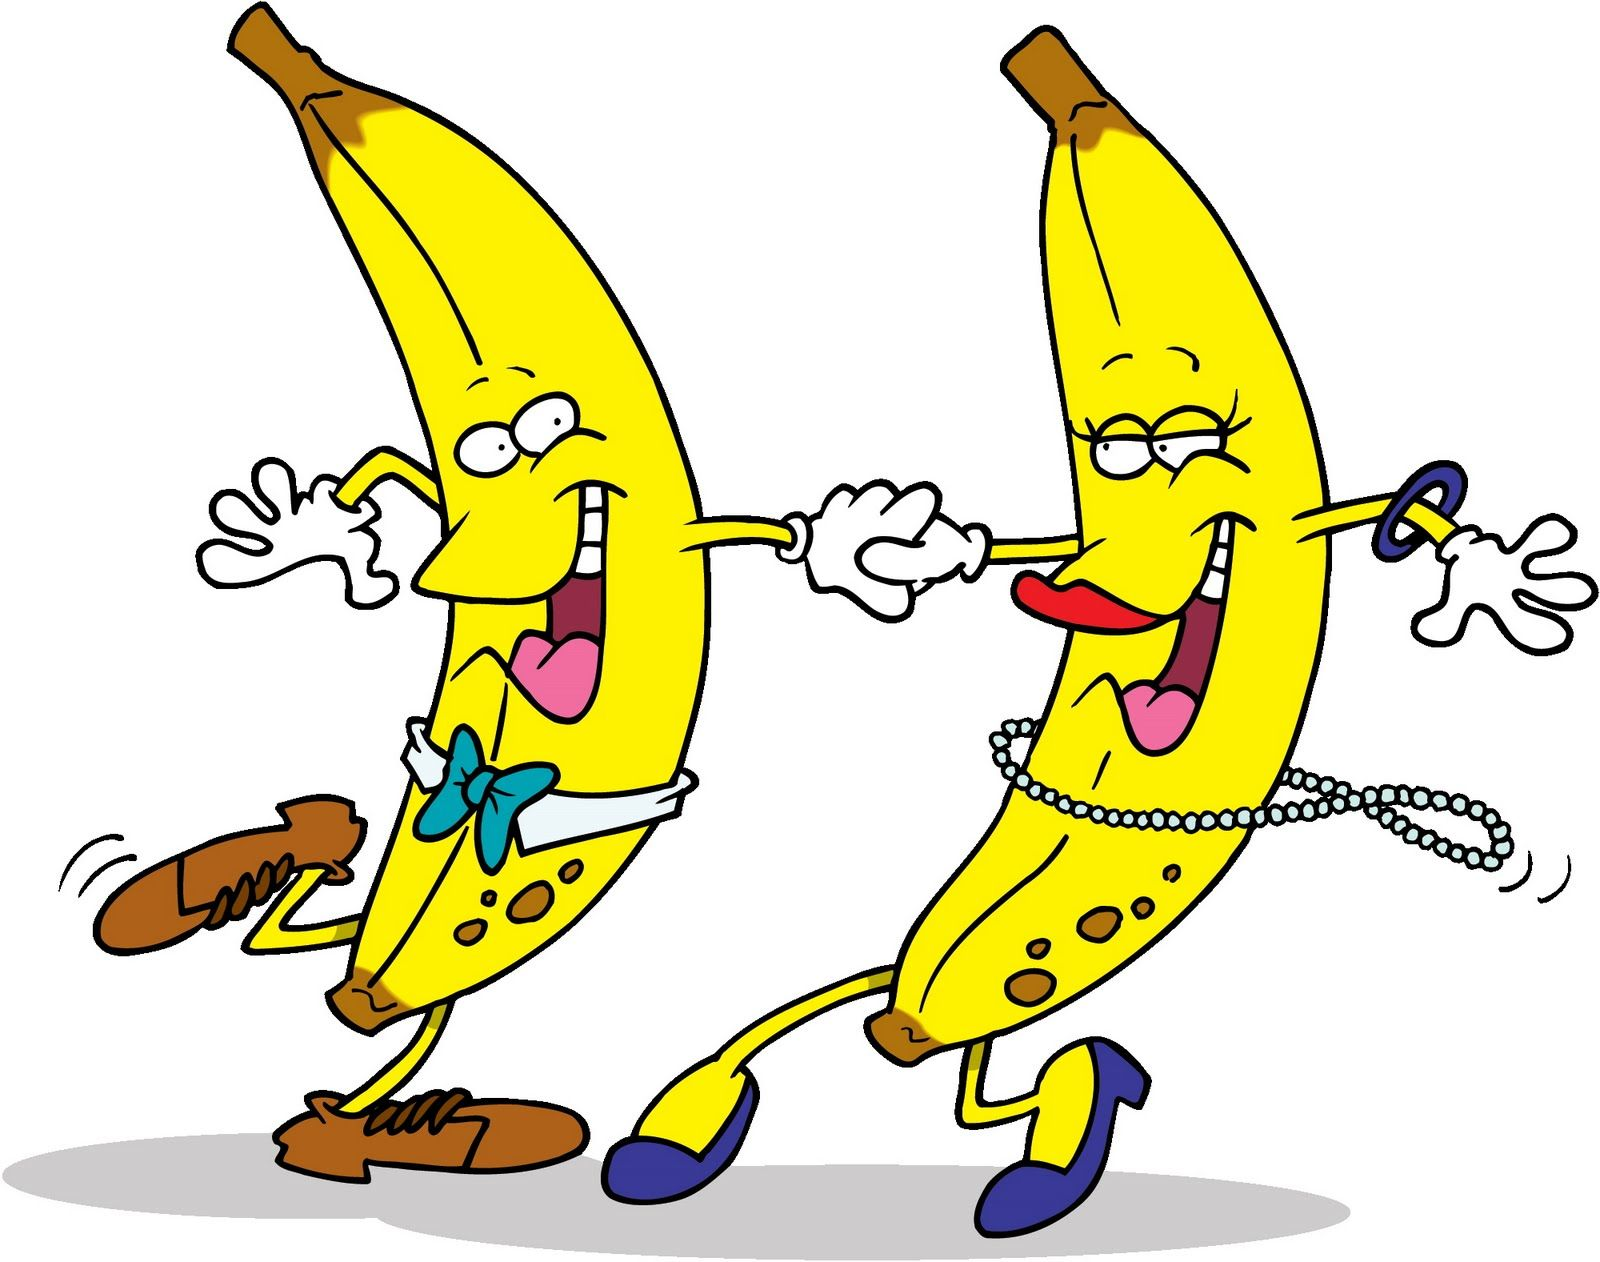 Funny banana clipart svg stock Pin by Satu Suomalainen on Go bananas & Minions | Dance images ... svg stock